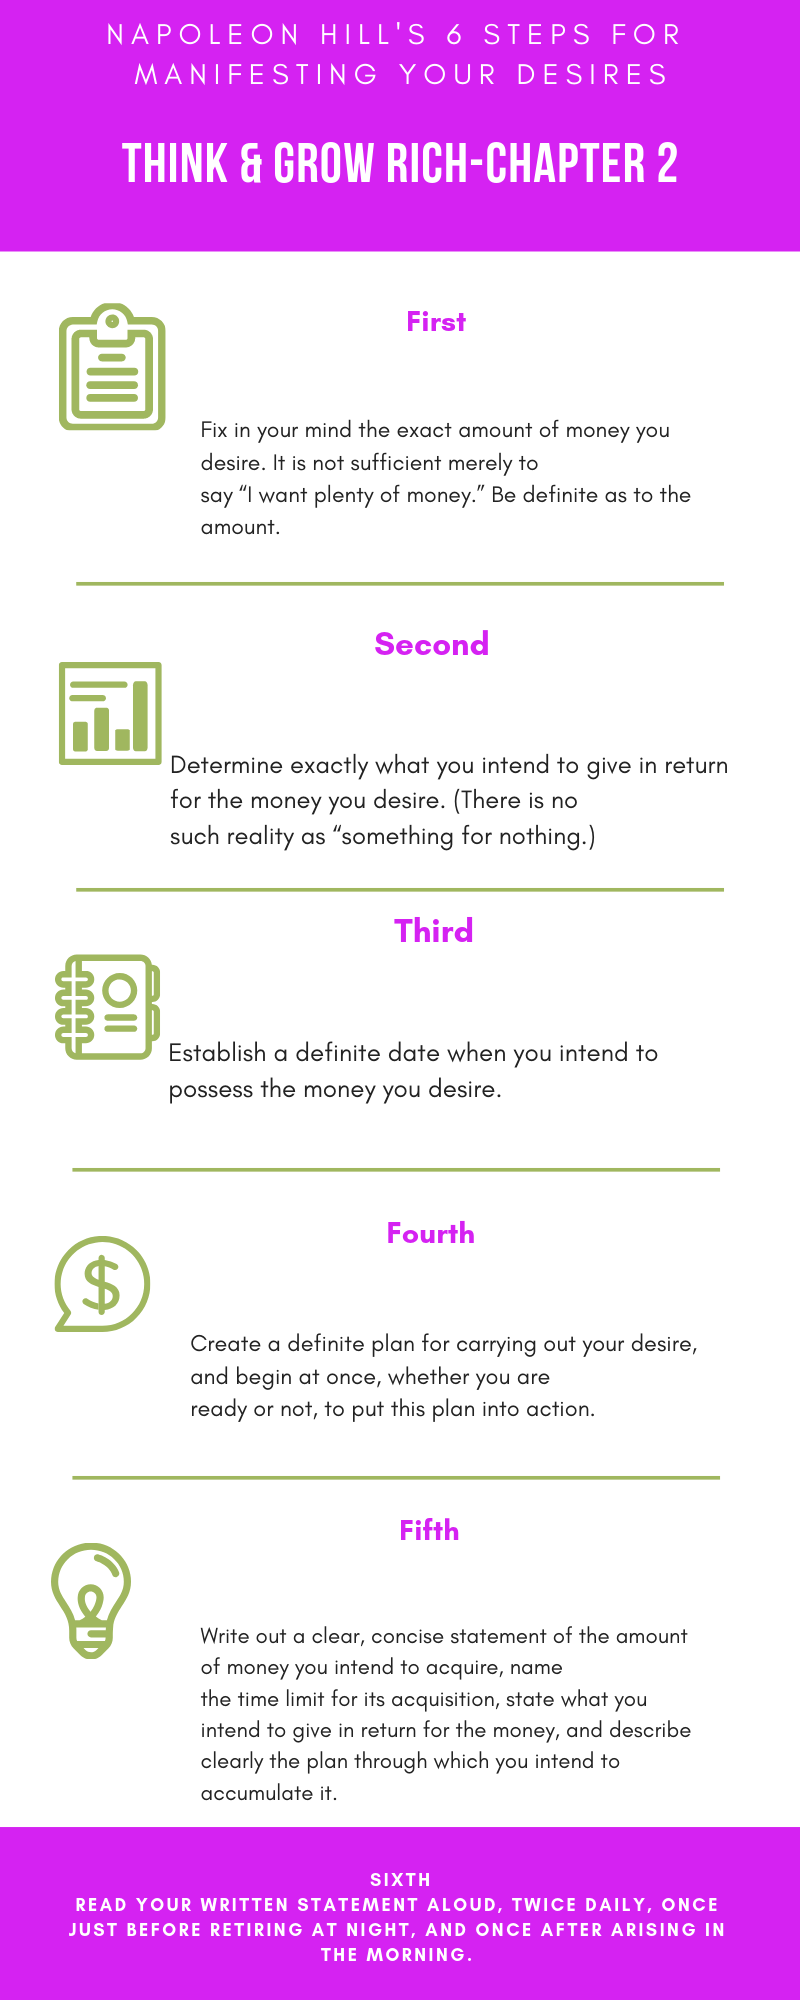 Napoleon Hill 6 steps.png